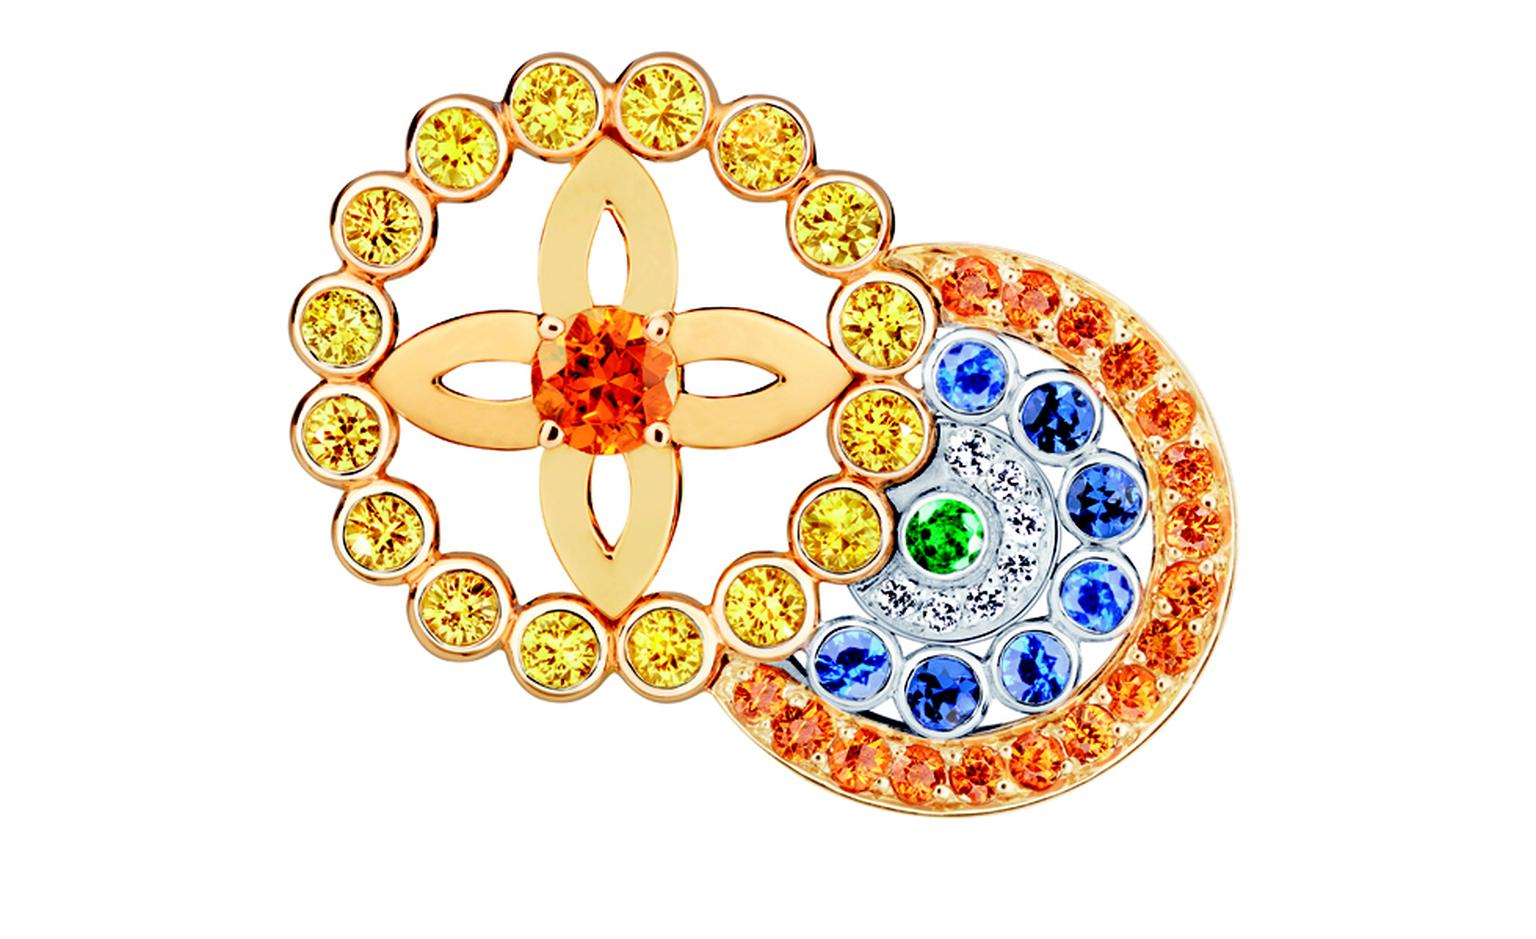 LOUIS VUITTON, Ornament Tribal Ring, yellow gold, blue, yellow and pink sapphires, spessartite and tsavorite garnets, diamonds. £5,600